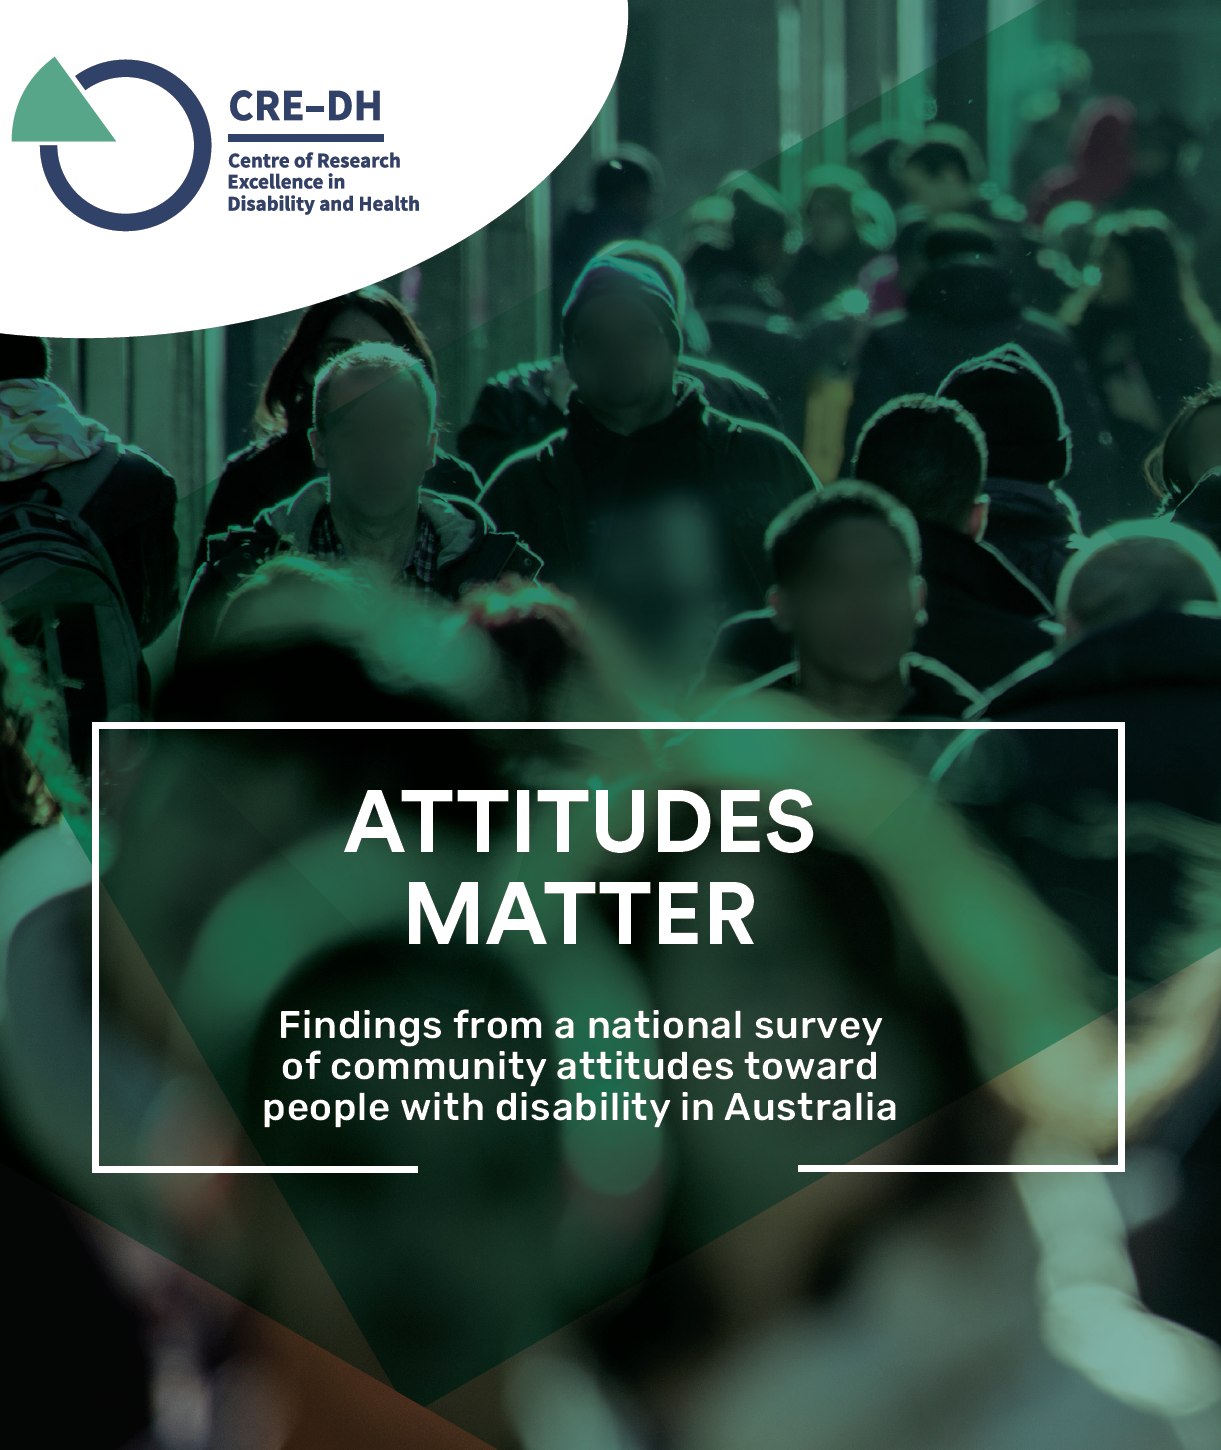 Blurry photograph of pedestrians walking. Attitudes Matter: Findings from a national survey of community attitudes towards people with disability in Australia.